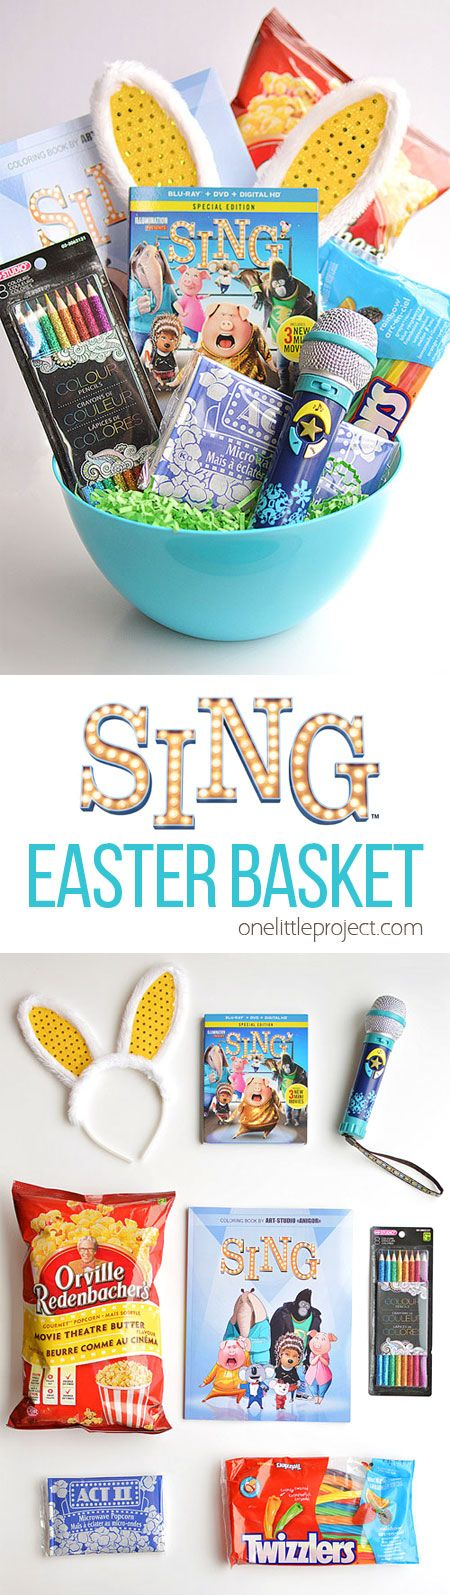 Make your own SING themed movie night Easter basket! With popcorn and all your favourite movie treats. The Blu-ray is in stores now! I love the bunny ears behind it. So cute! (sponsored)